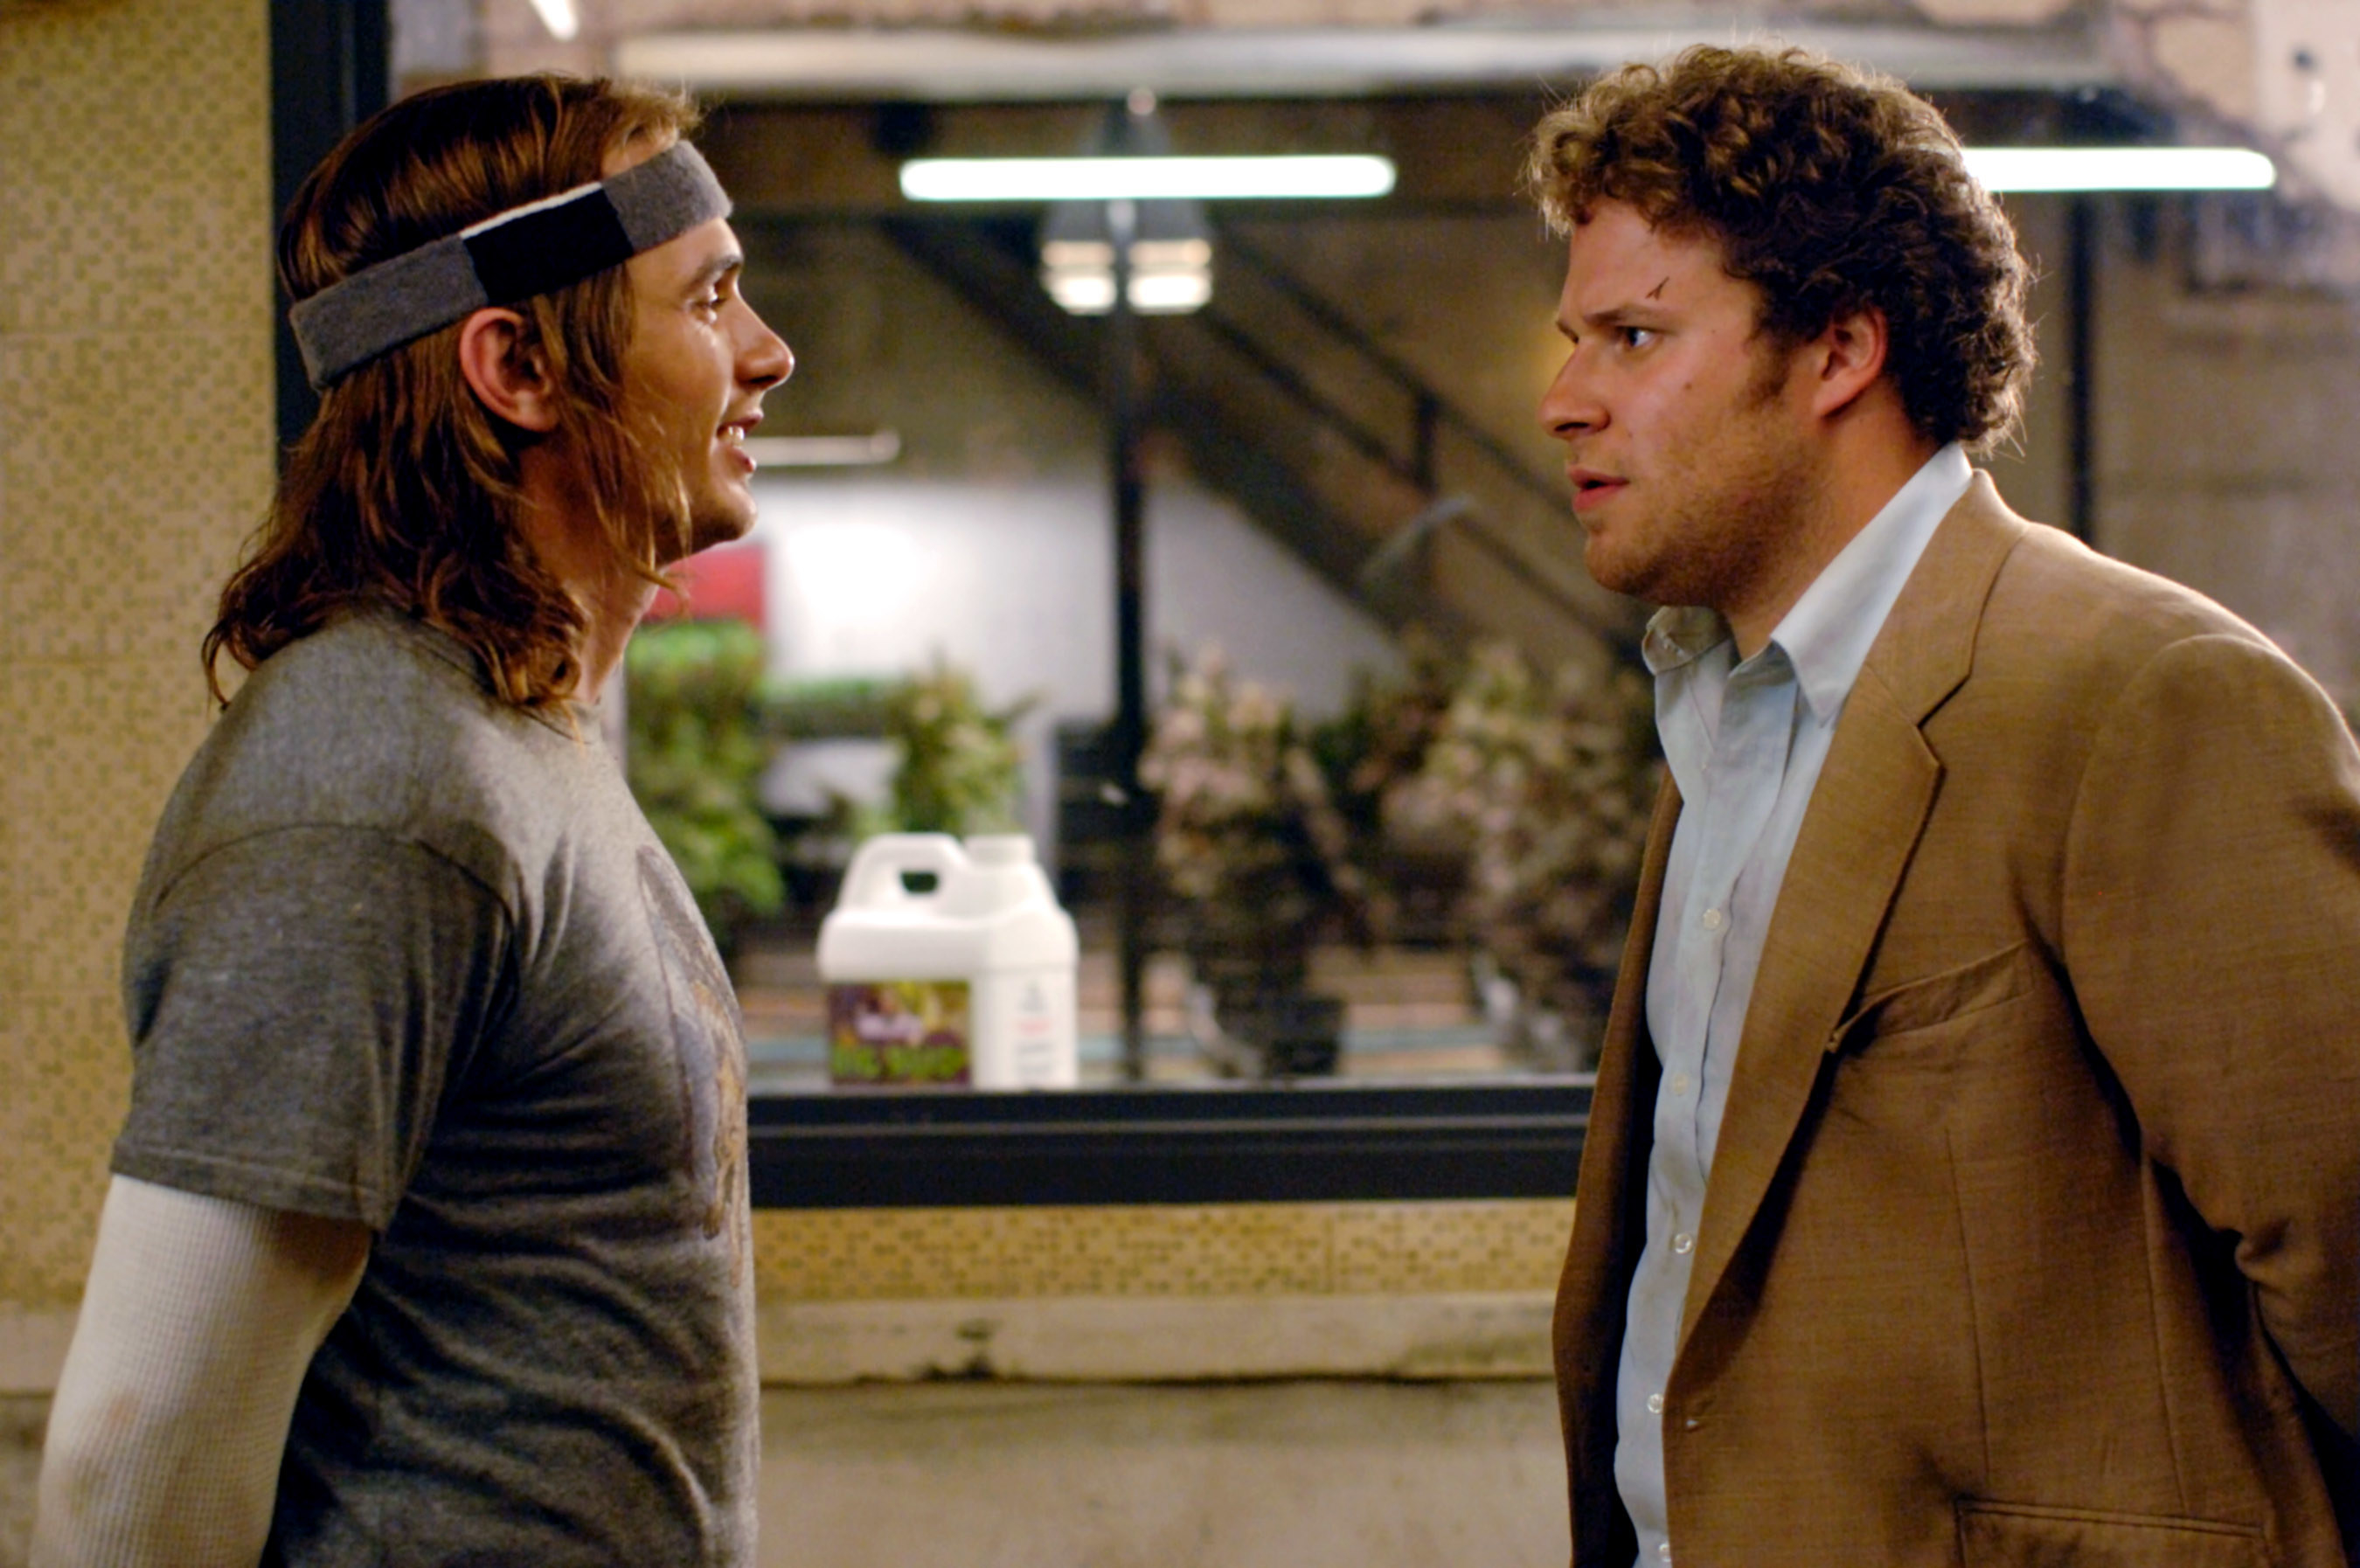 Franco and Rogen look at each other in Pineapple Express